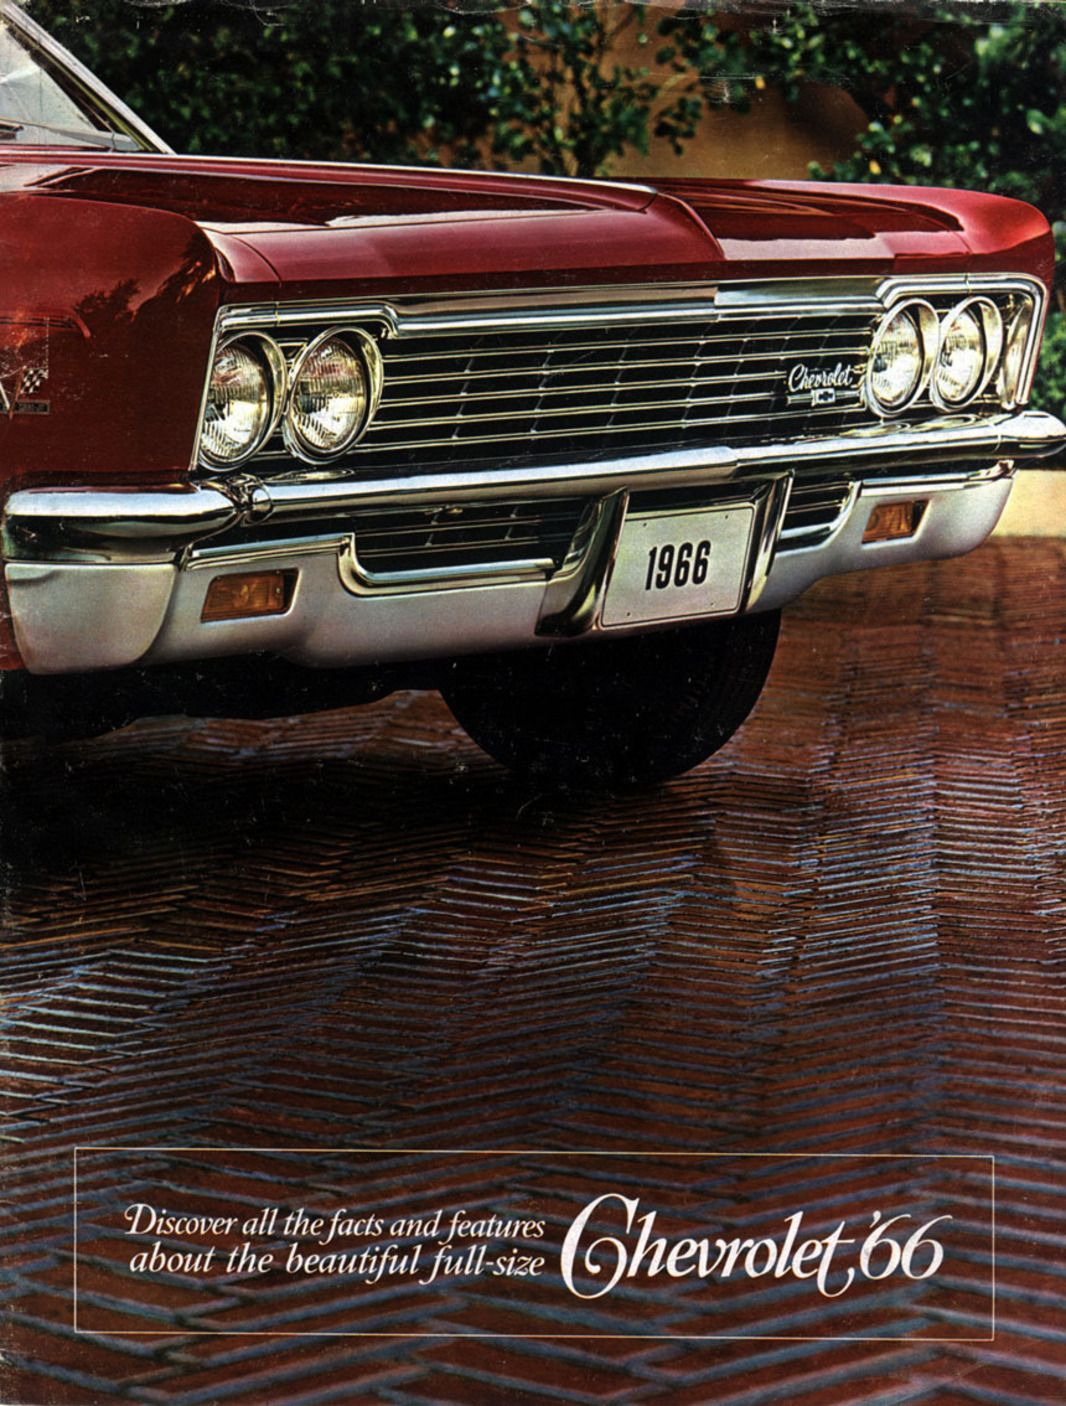 1966 Chevy Ad With Images Automobile Advertising Old Muscle